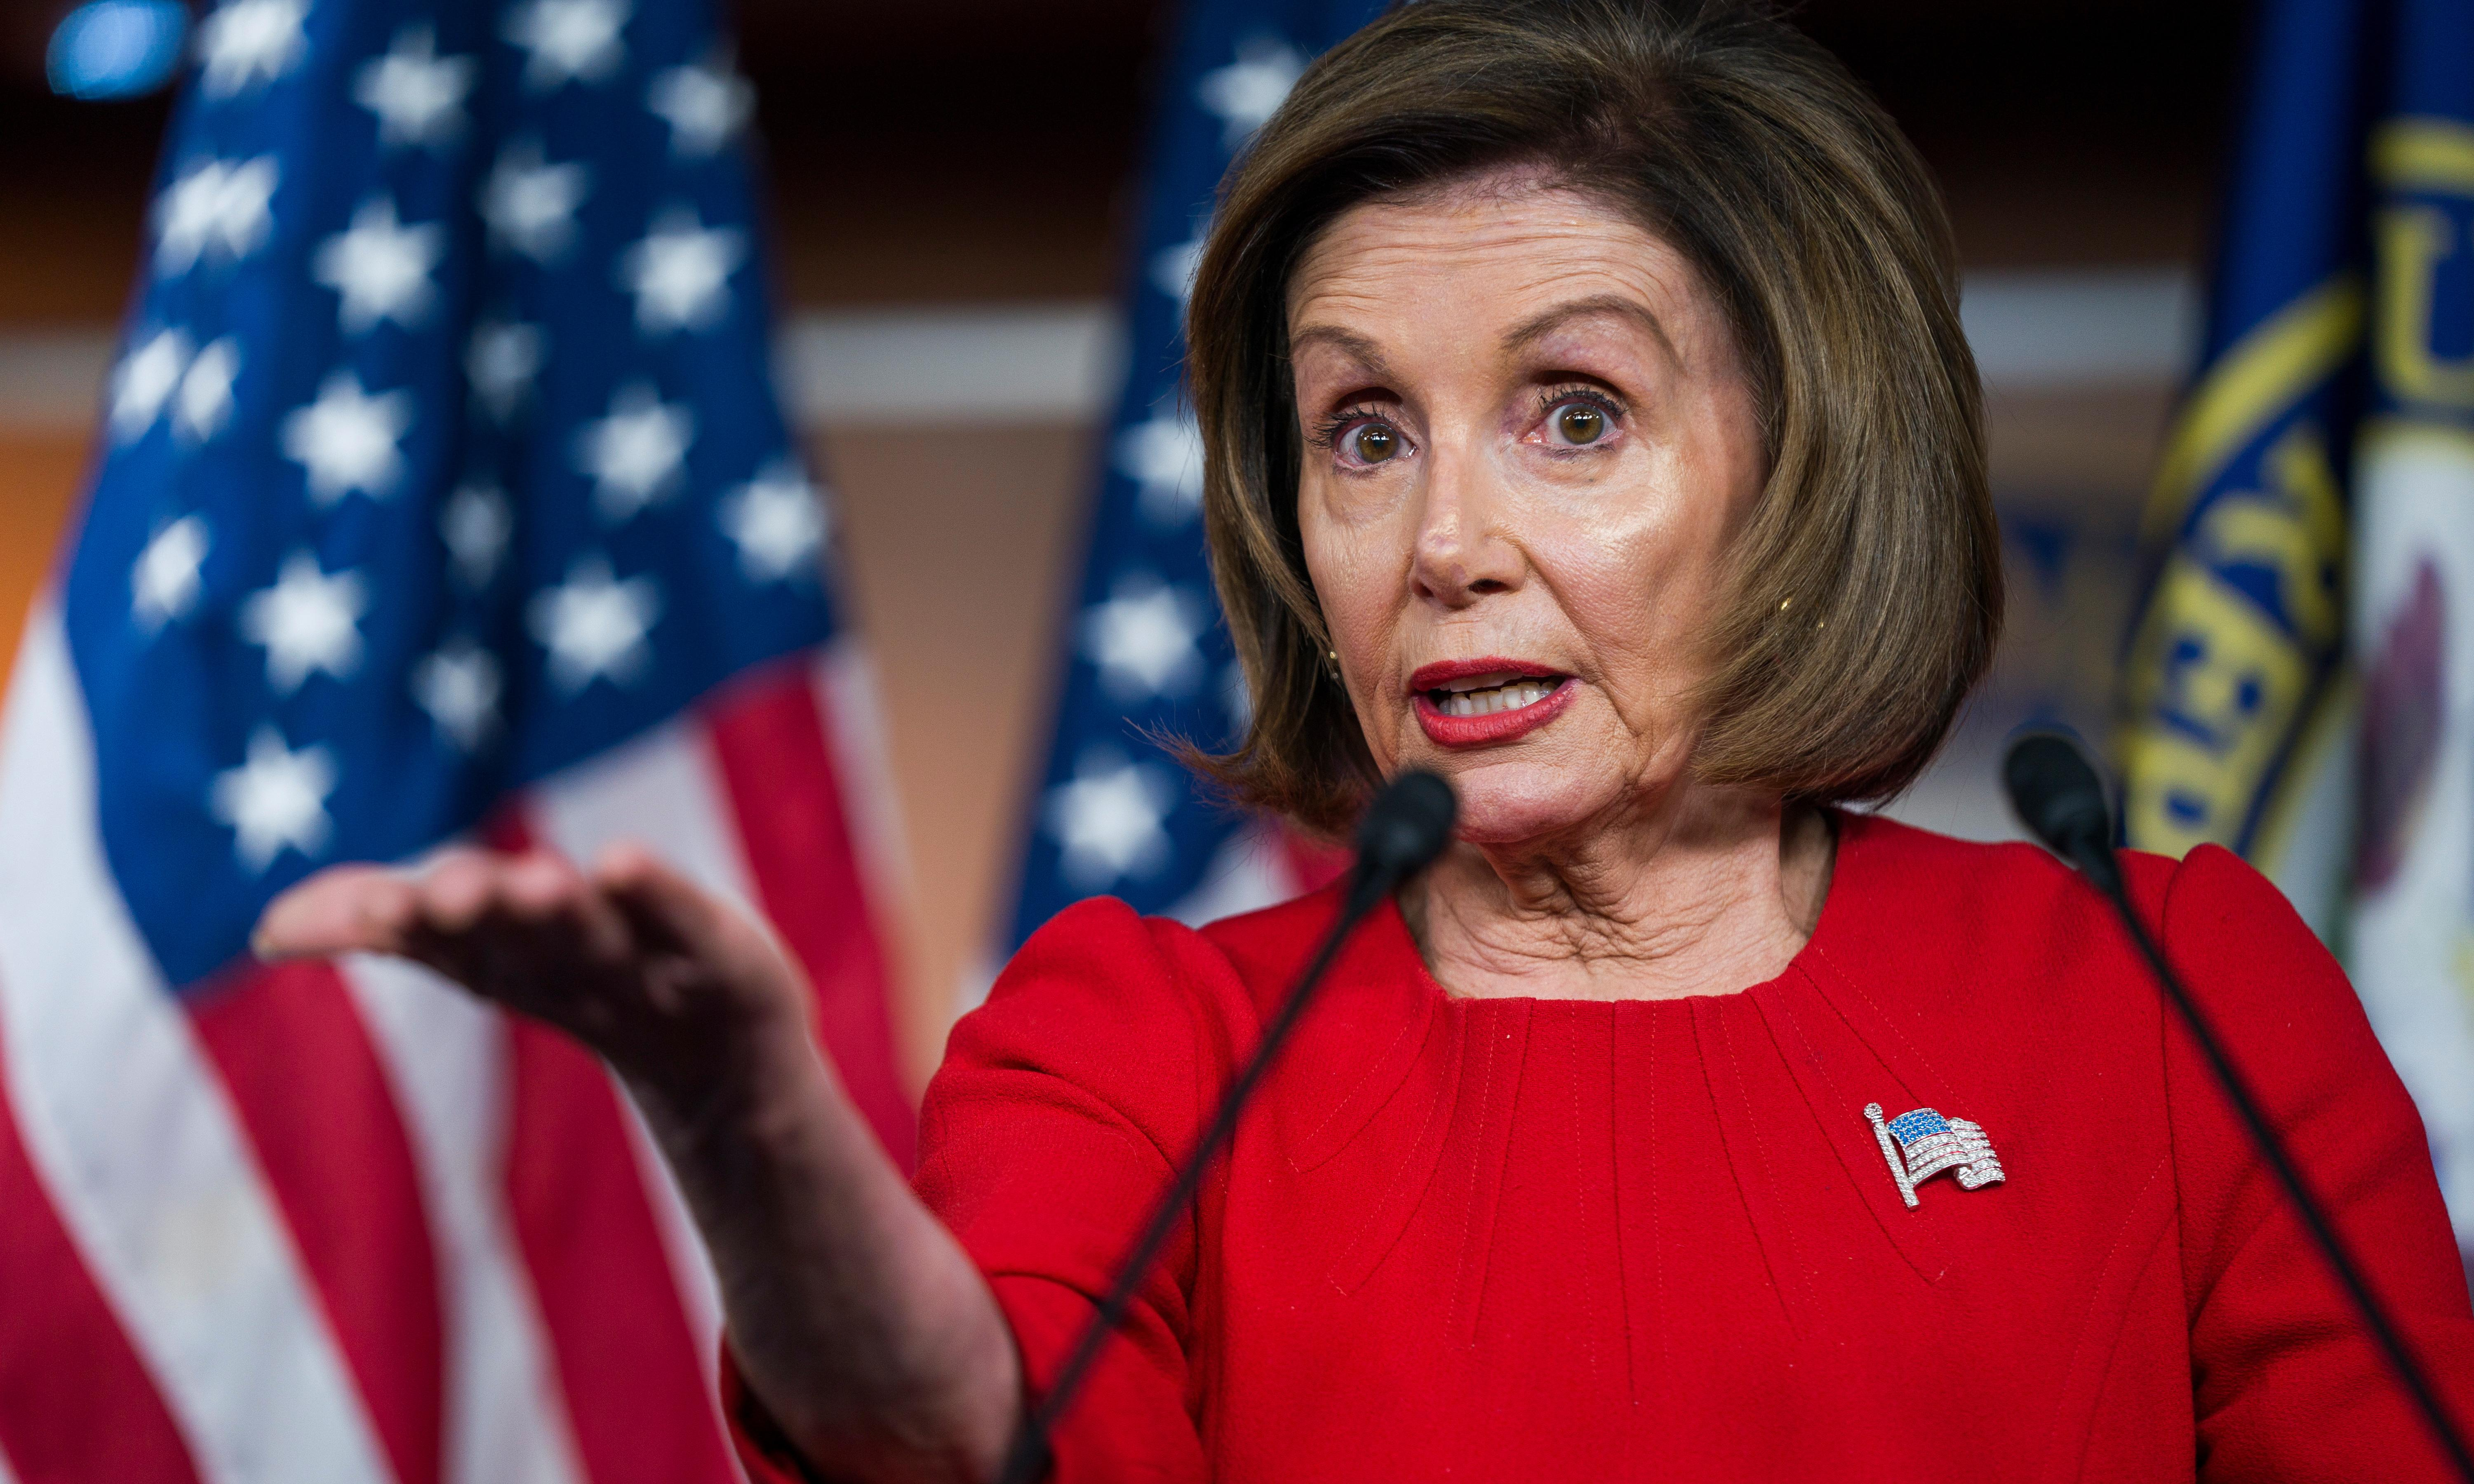 Pelosi says Trump is welcome to testify in impeachment inquiry, if he chooses